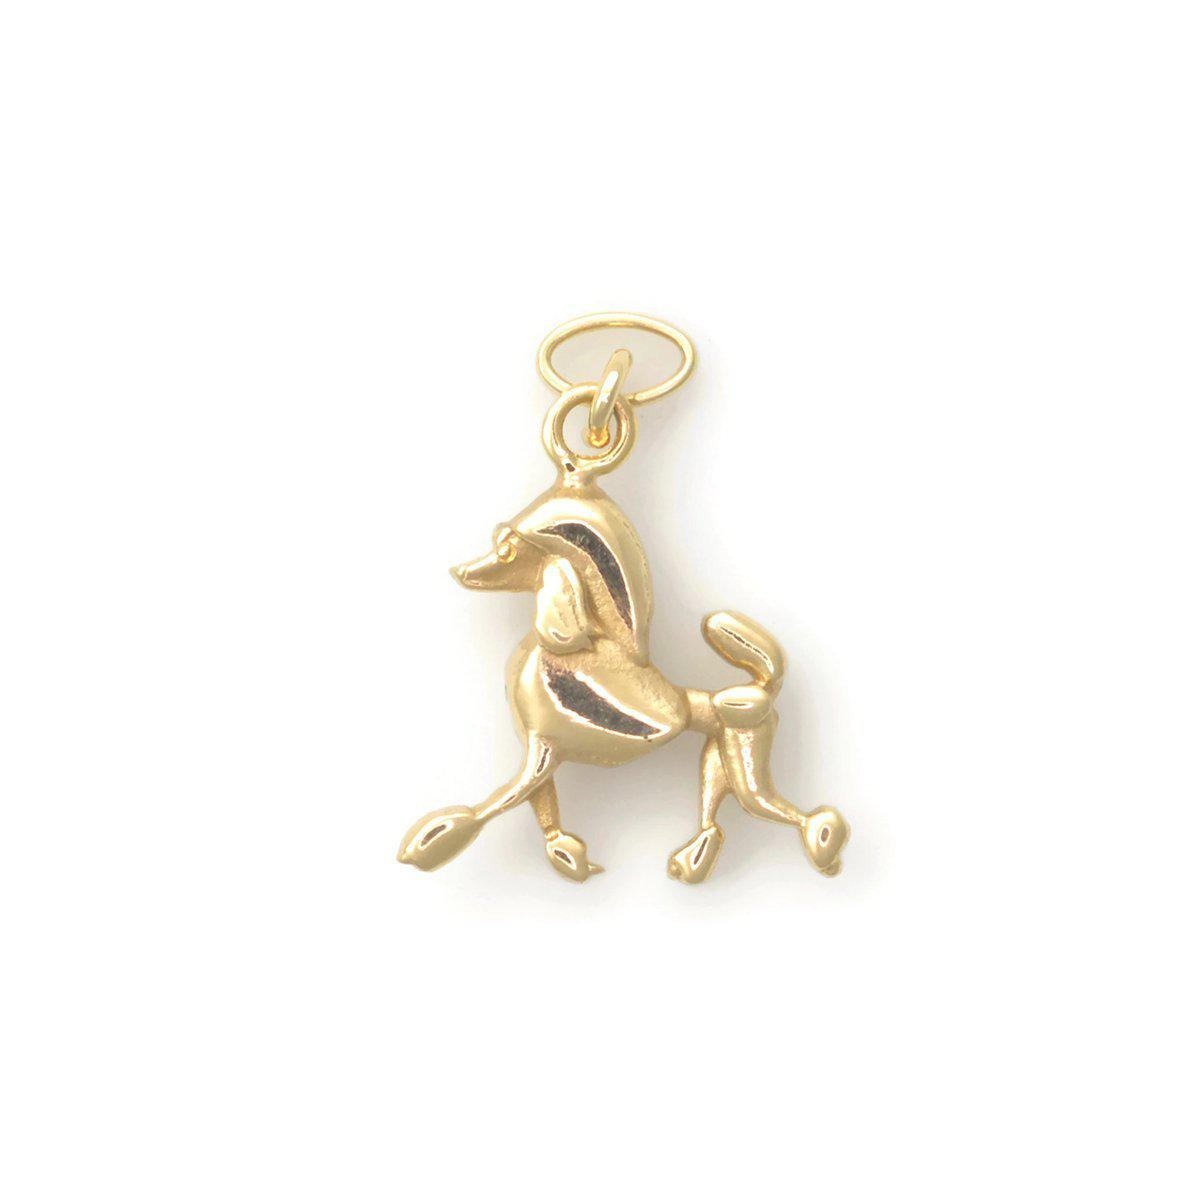 Donna Pizarro Designs 14kt Yellow Gold Poodle Charm Strutt Your Stuff BaCAy6N